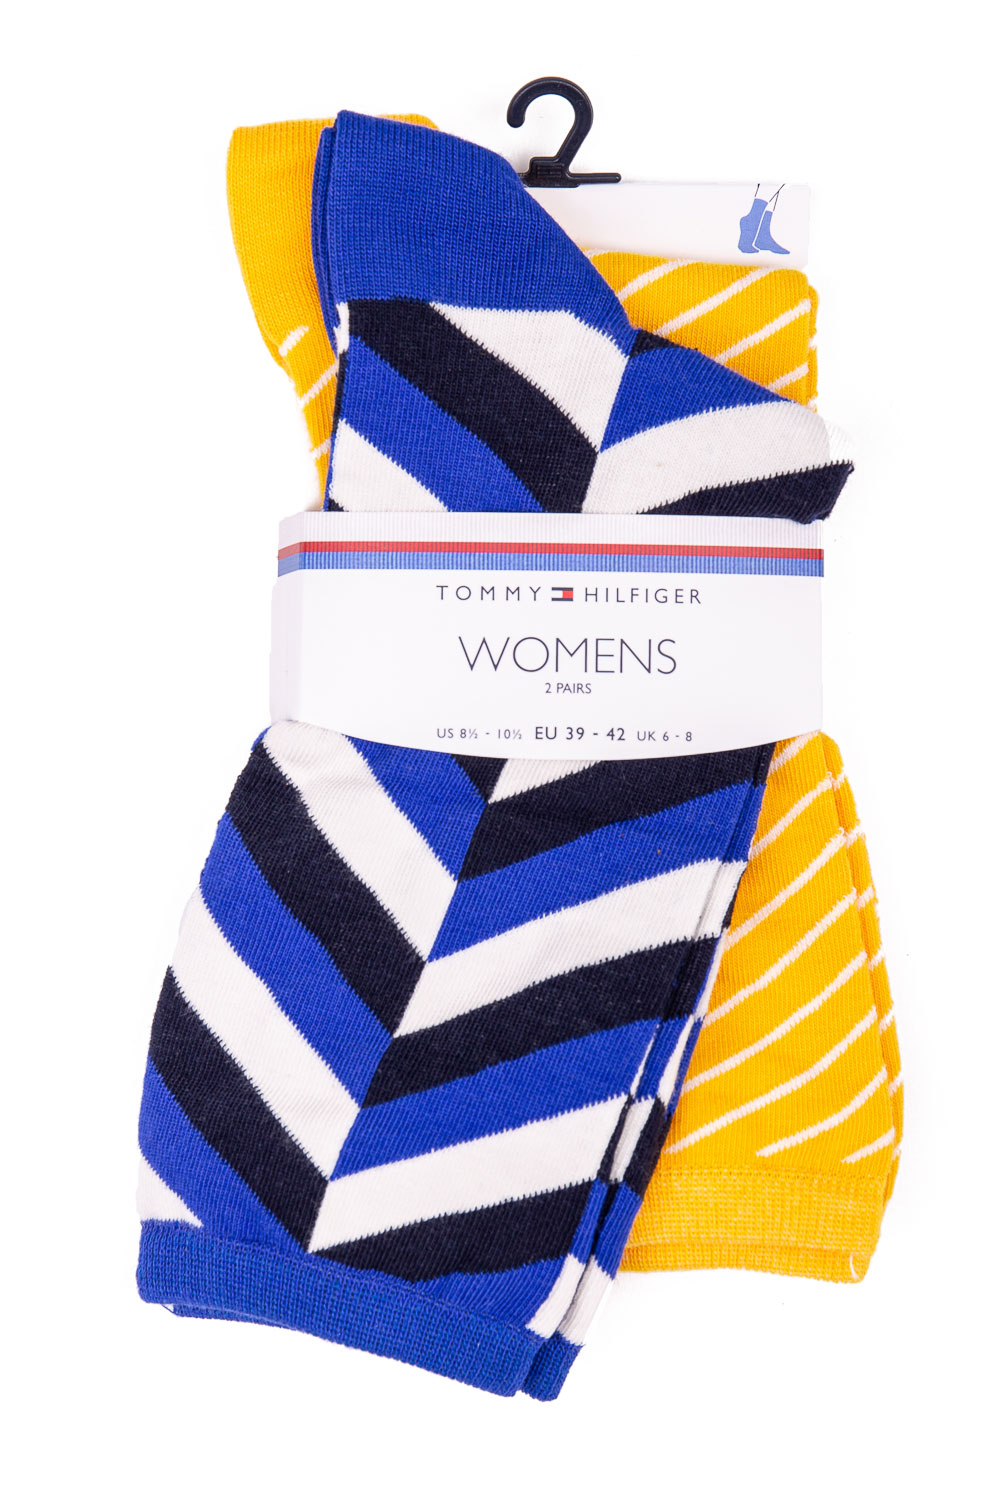 Tommy Hilfiger žluto-modrý 2 pack ponožek TH Women Sock 2P Herringbone